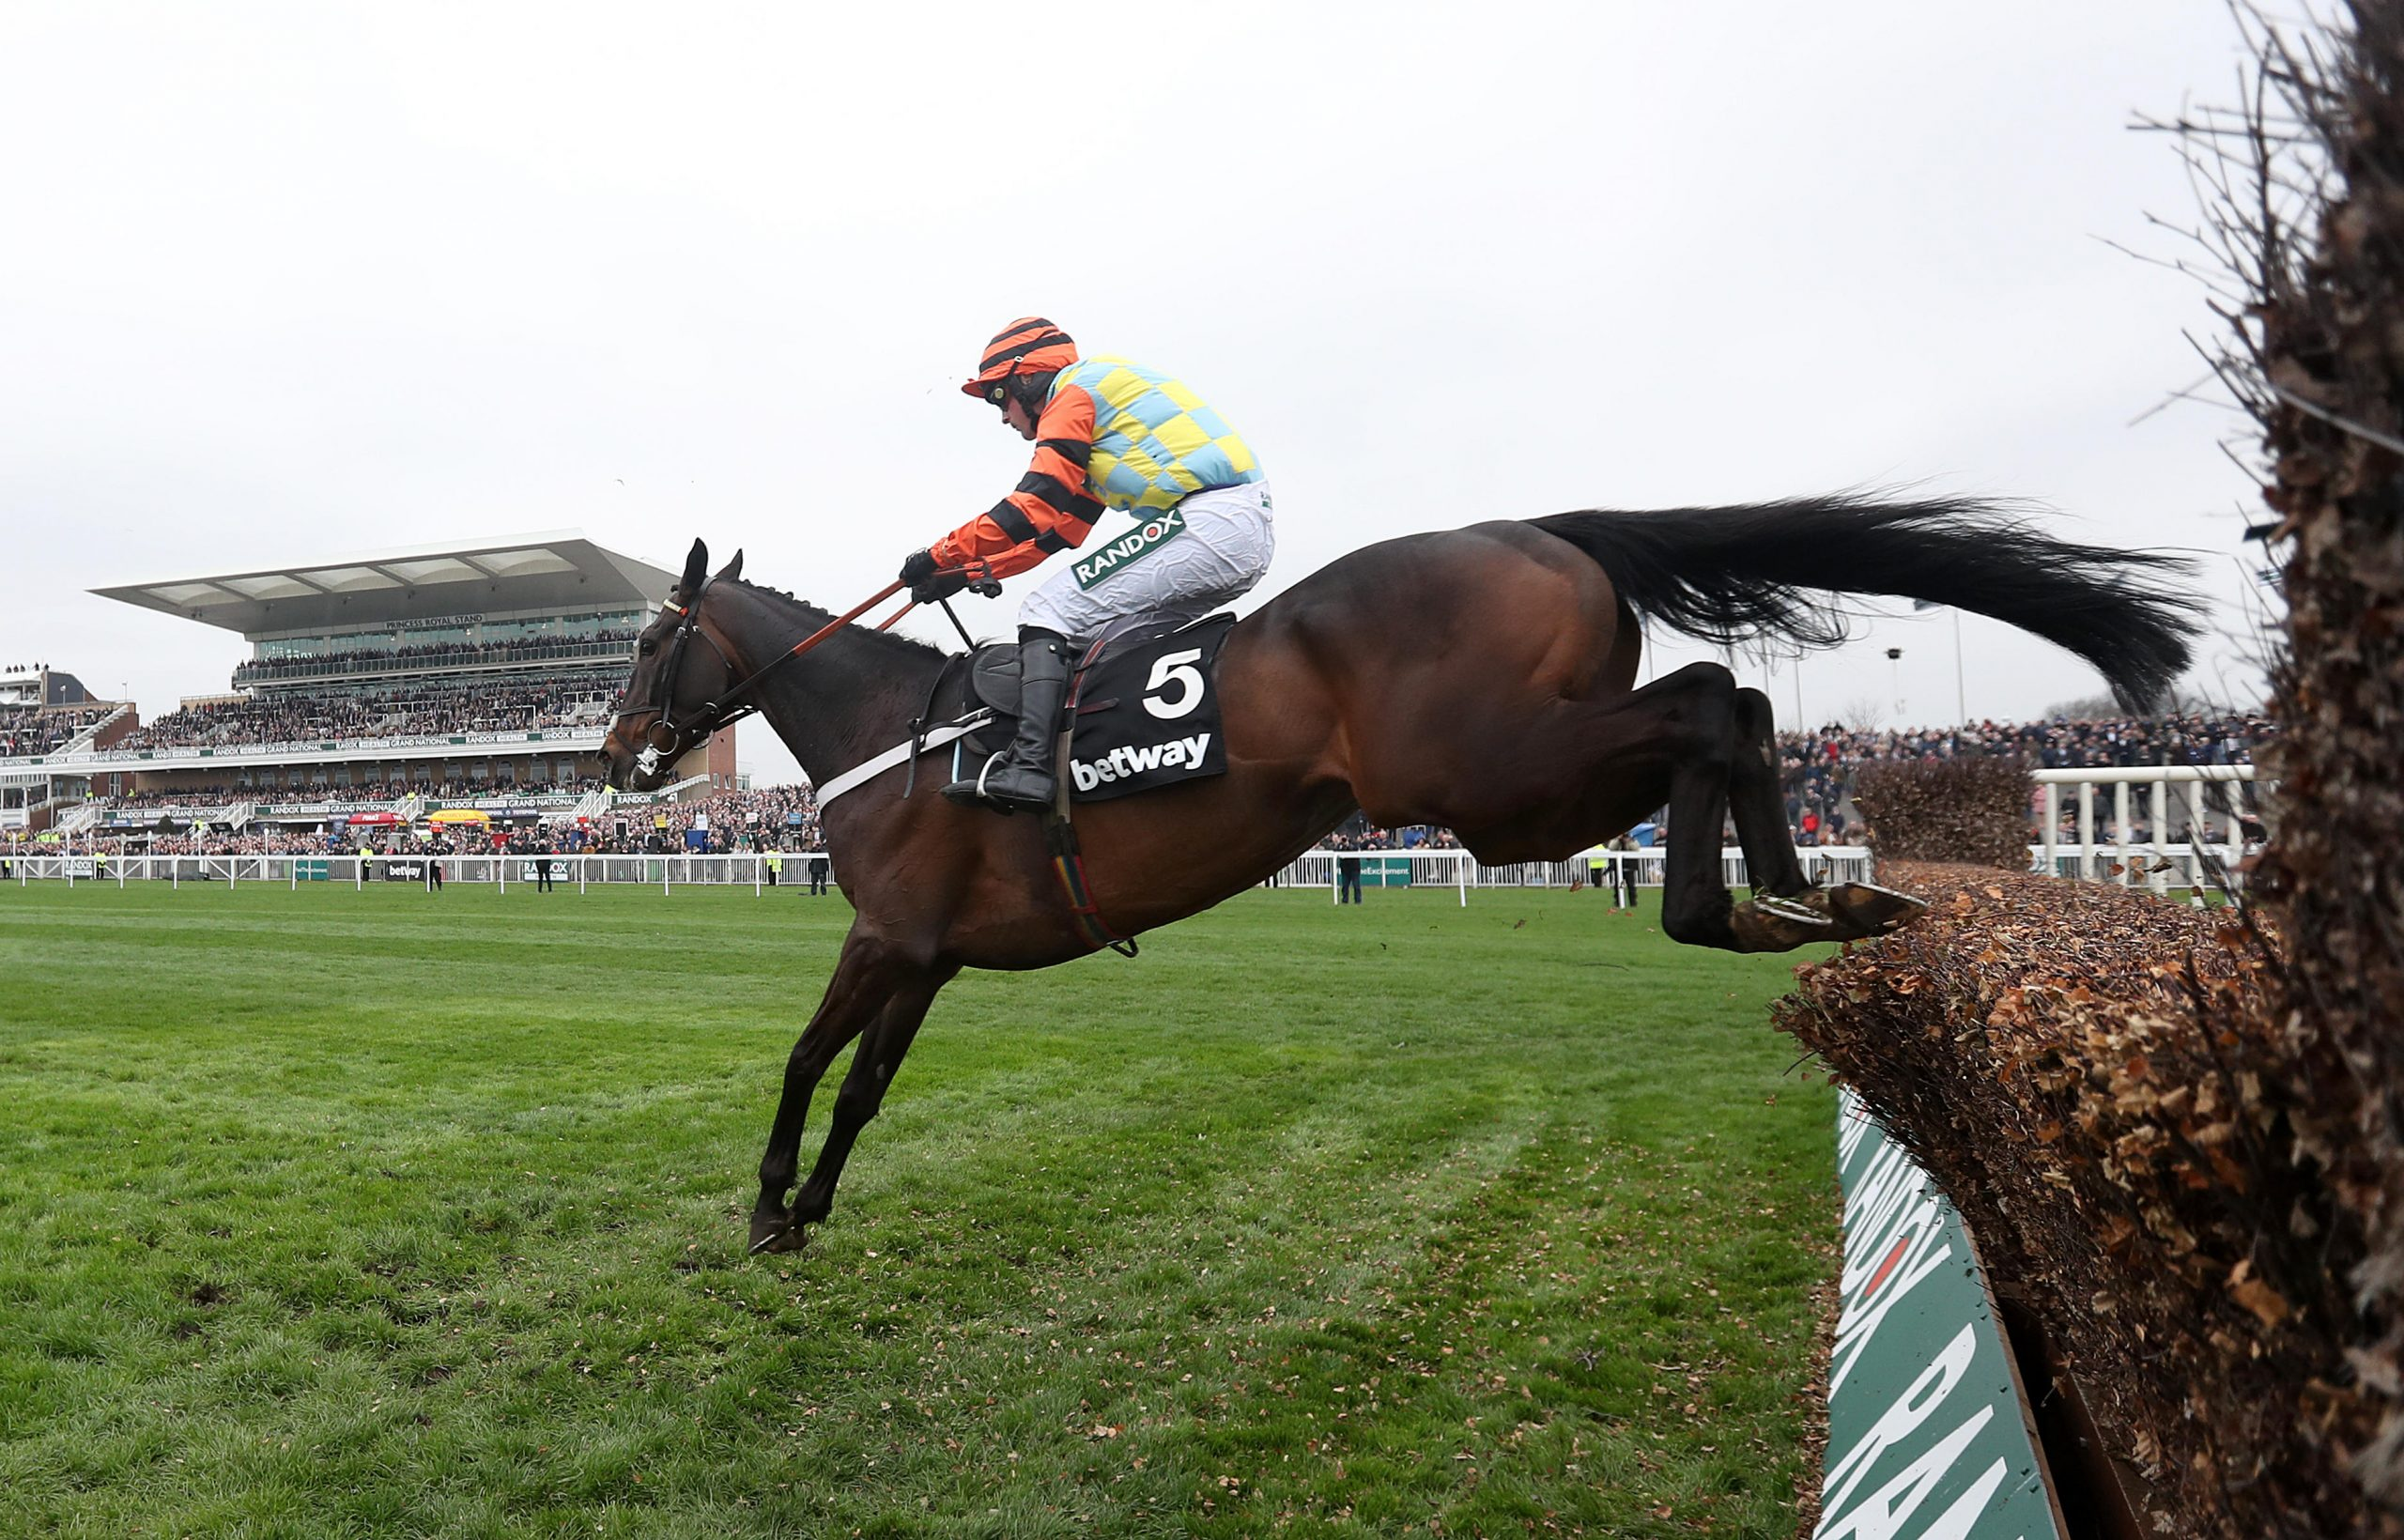 Might Bite ridden by Nico de Boinville jumps the last prior to winning the Betway Bowl Chase during day one of the 2018 Randox Health Grand National Festival at Aintree Racecourse, Liverpool.